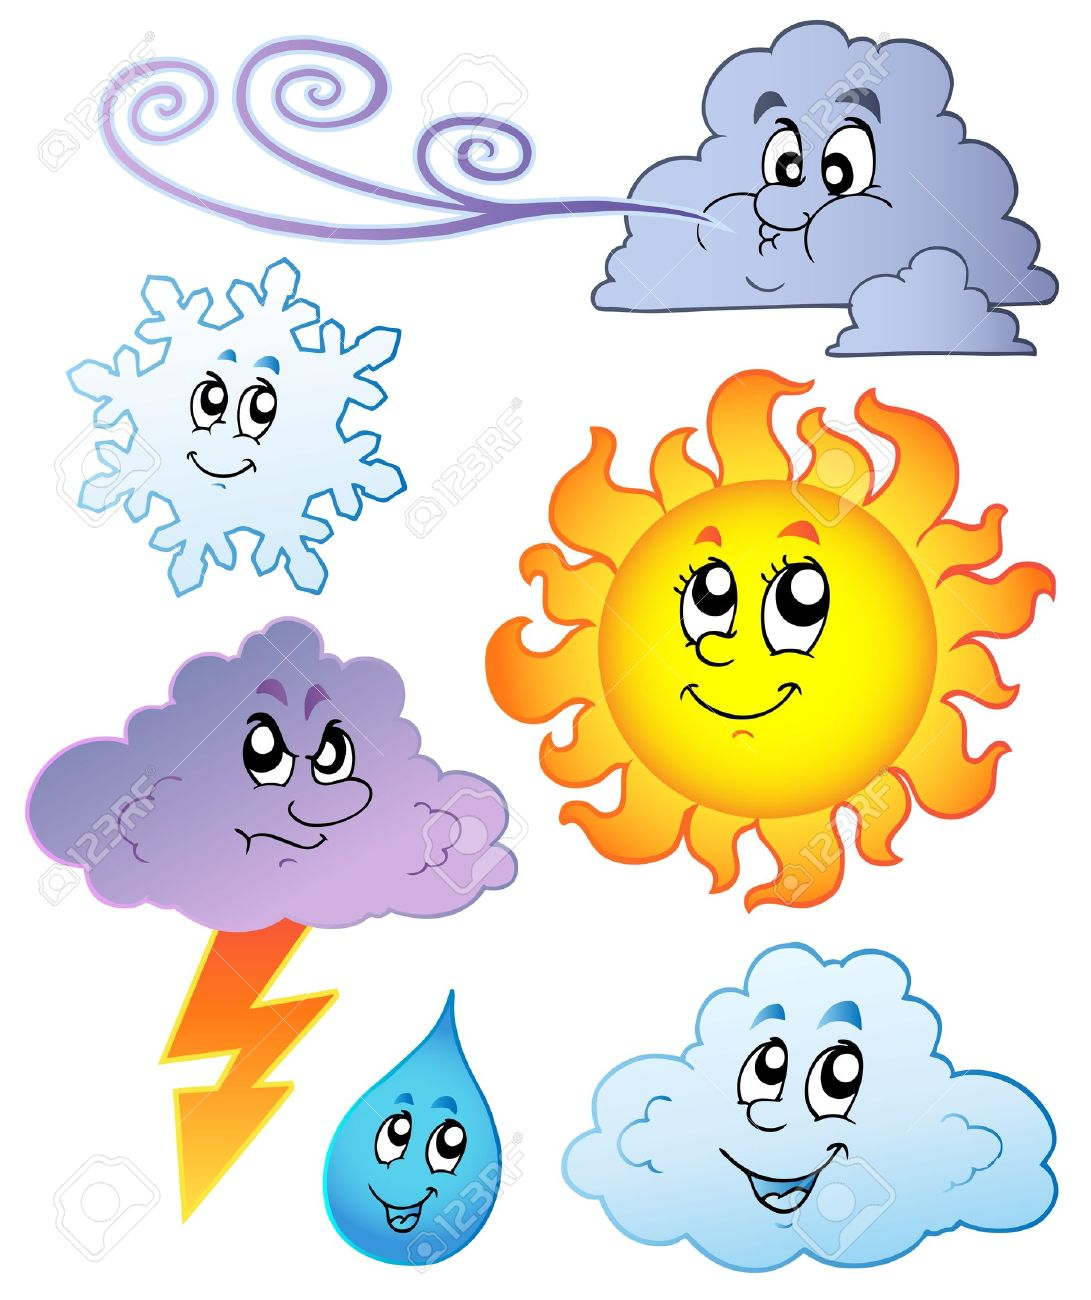 Cartoon weather images -   illustration. Stock Vector - 8195497